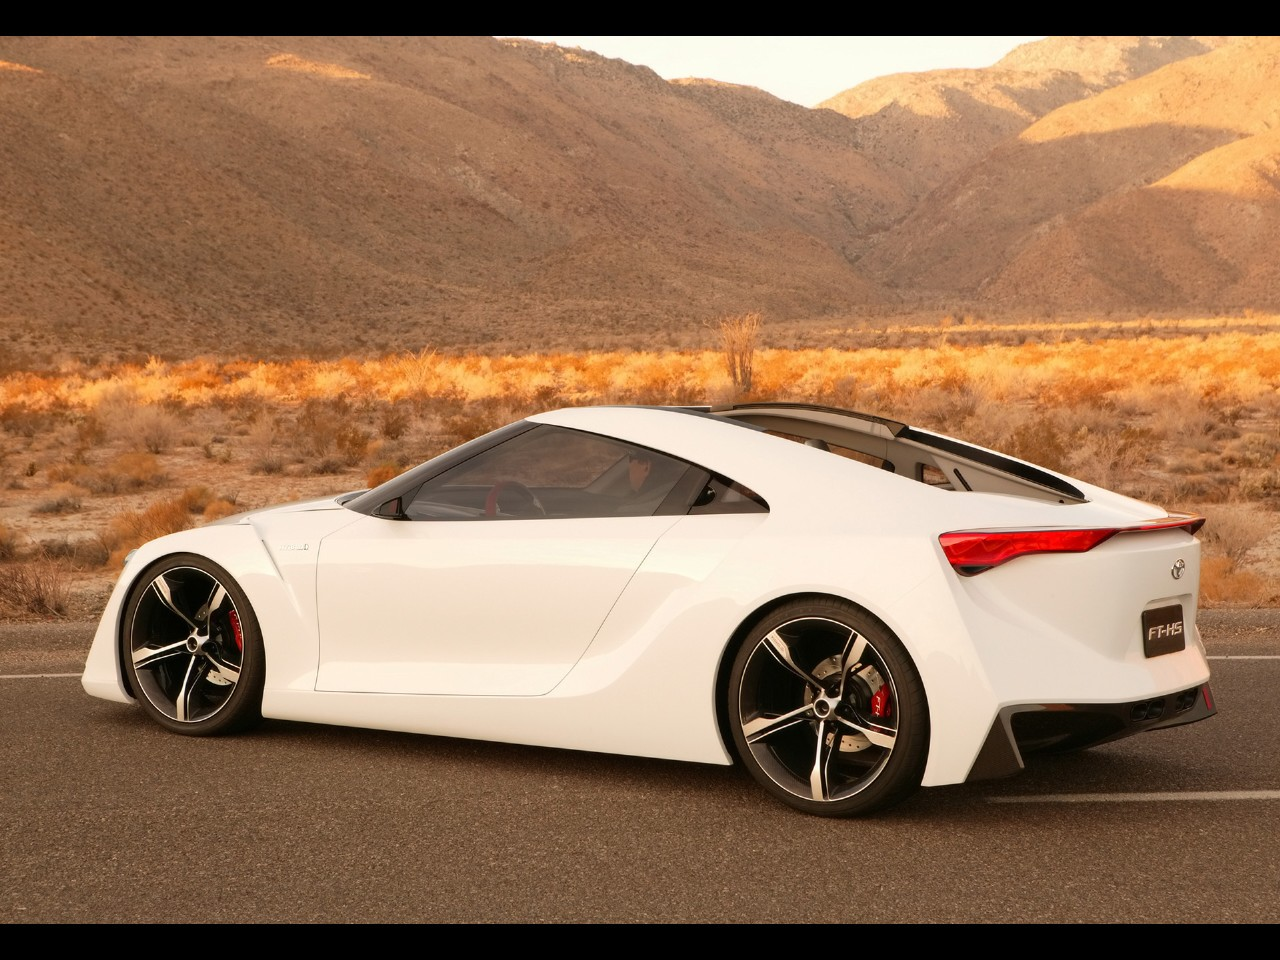 2007 Toyota Ft Hs Concept History Pictures Value Auction S Research And News